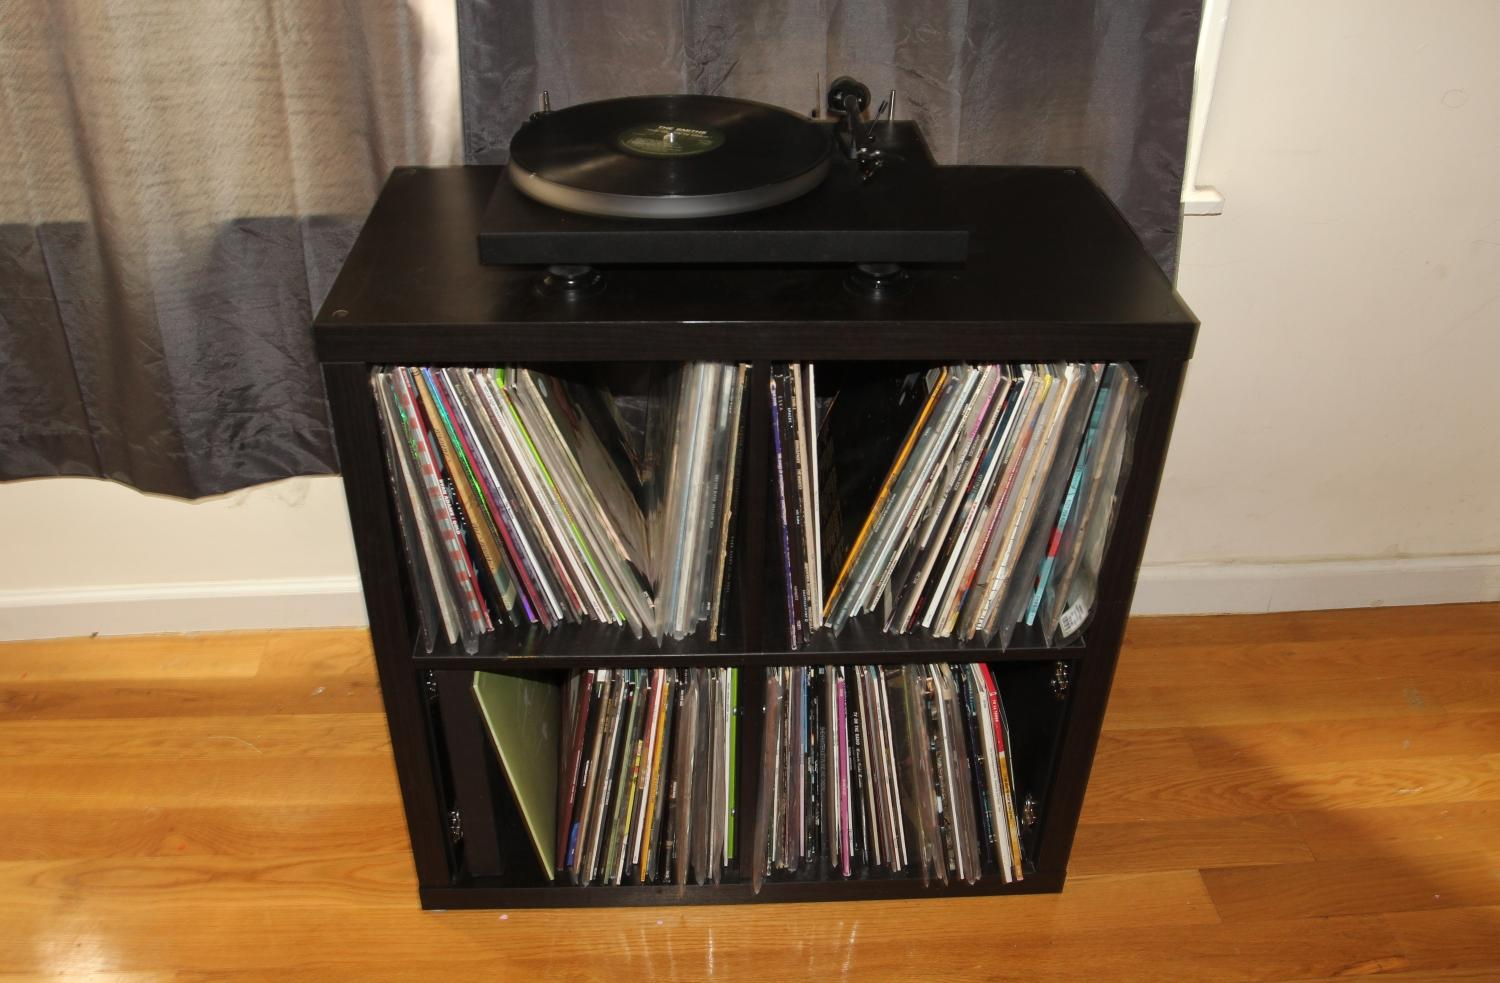 Get those records off the floor